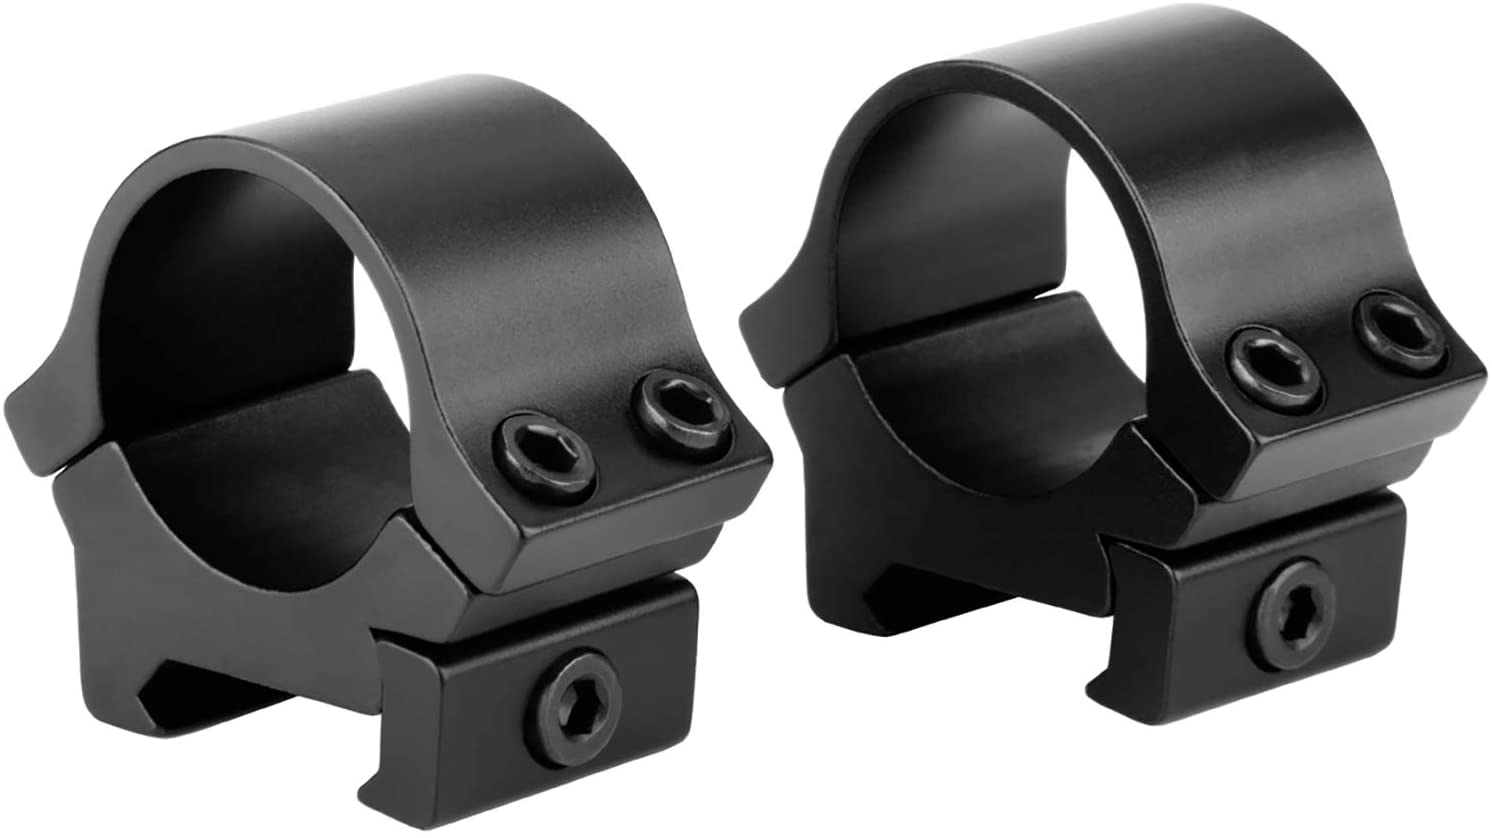 Low Profile Scope Rings 1 inch 2 Pieces Rifle Scope Rings Scope Mounting Rings 1 Inch for Picatinny and Weaver Rails